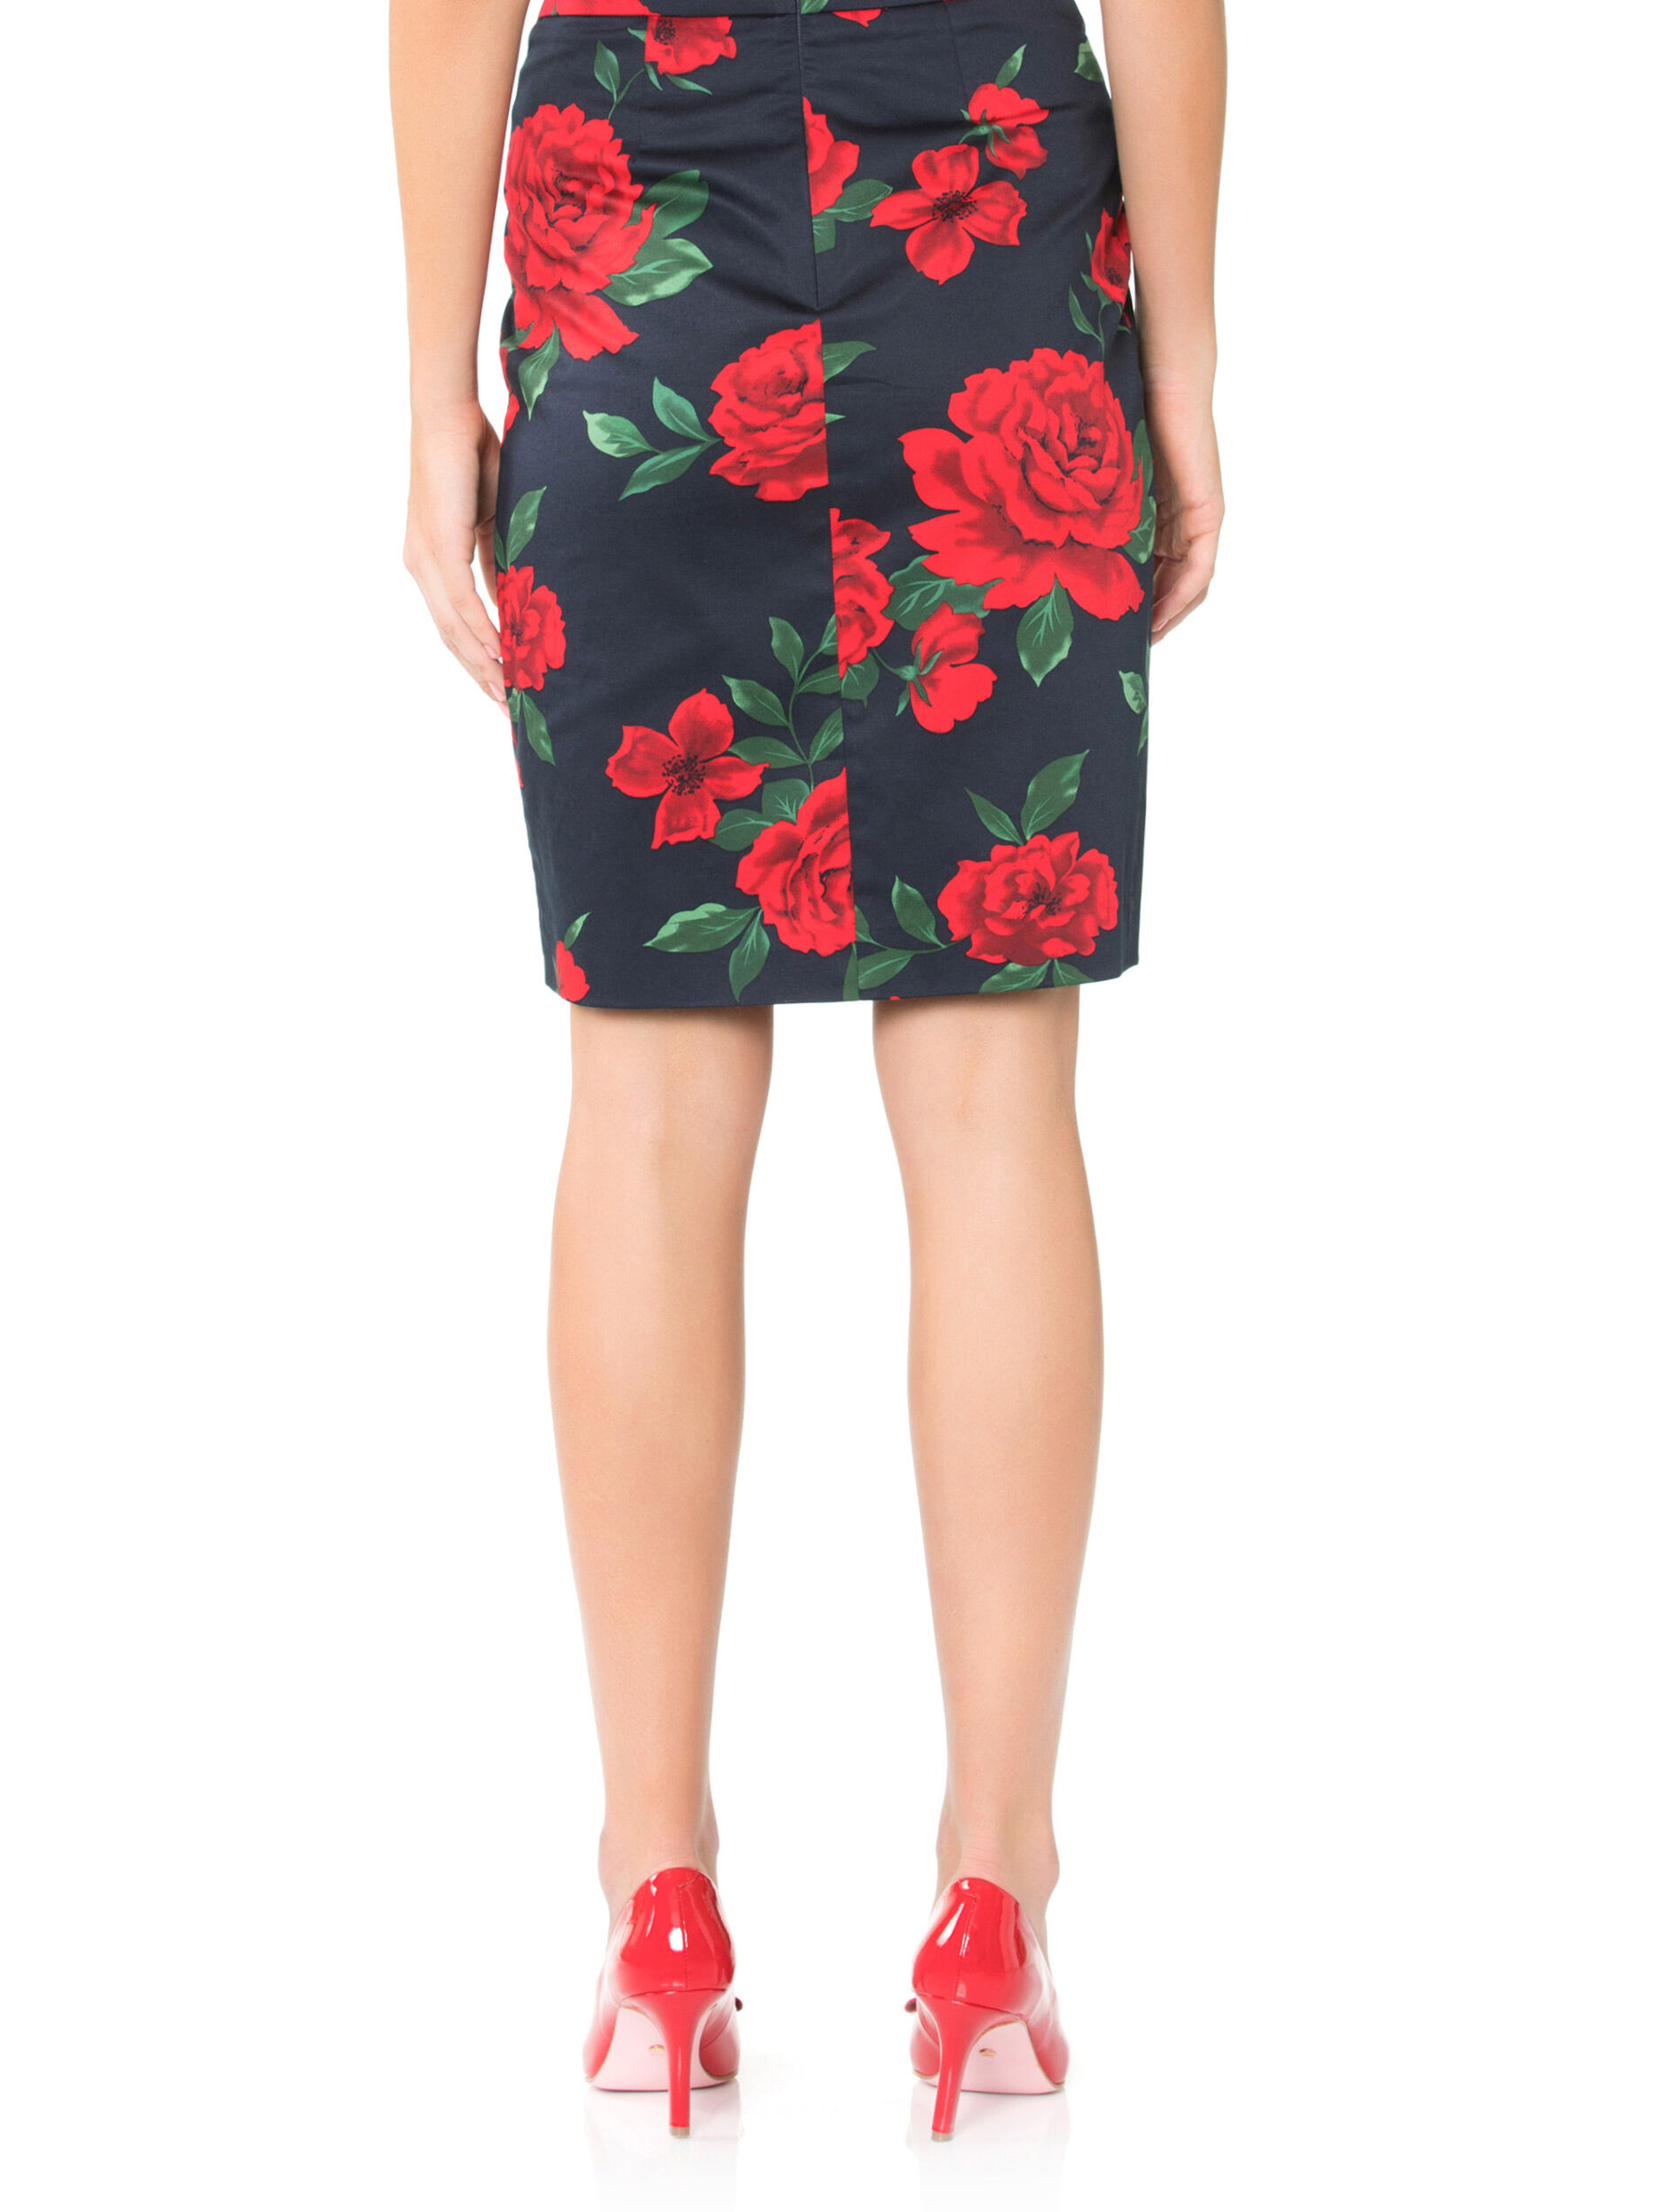 Kissed By A Rose Skirt